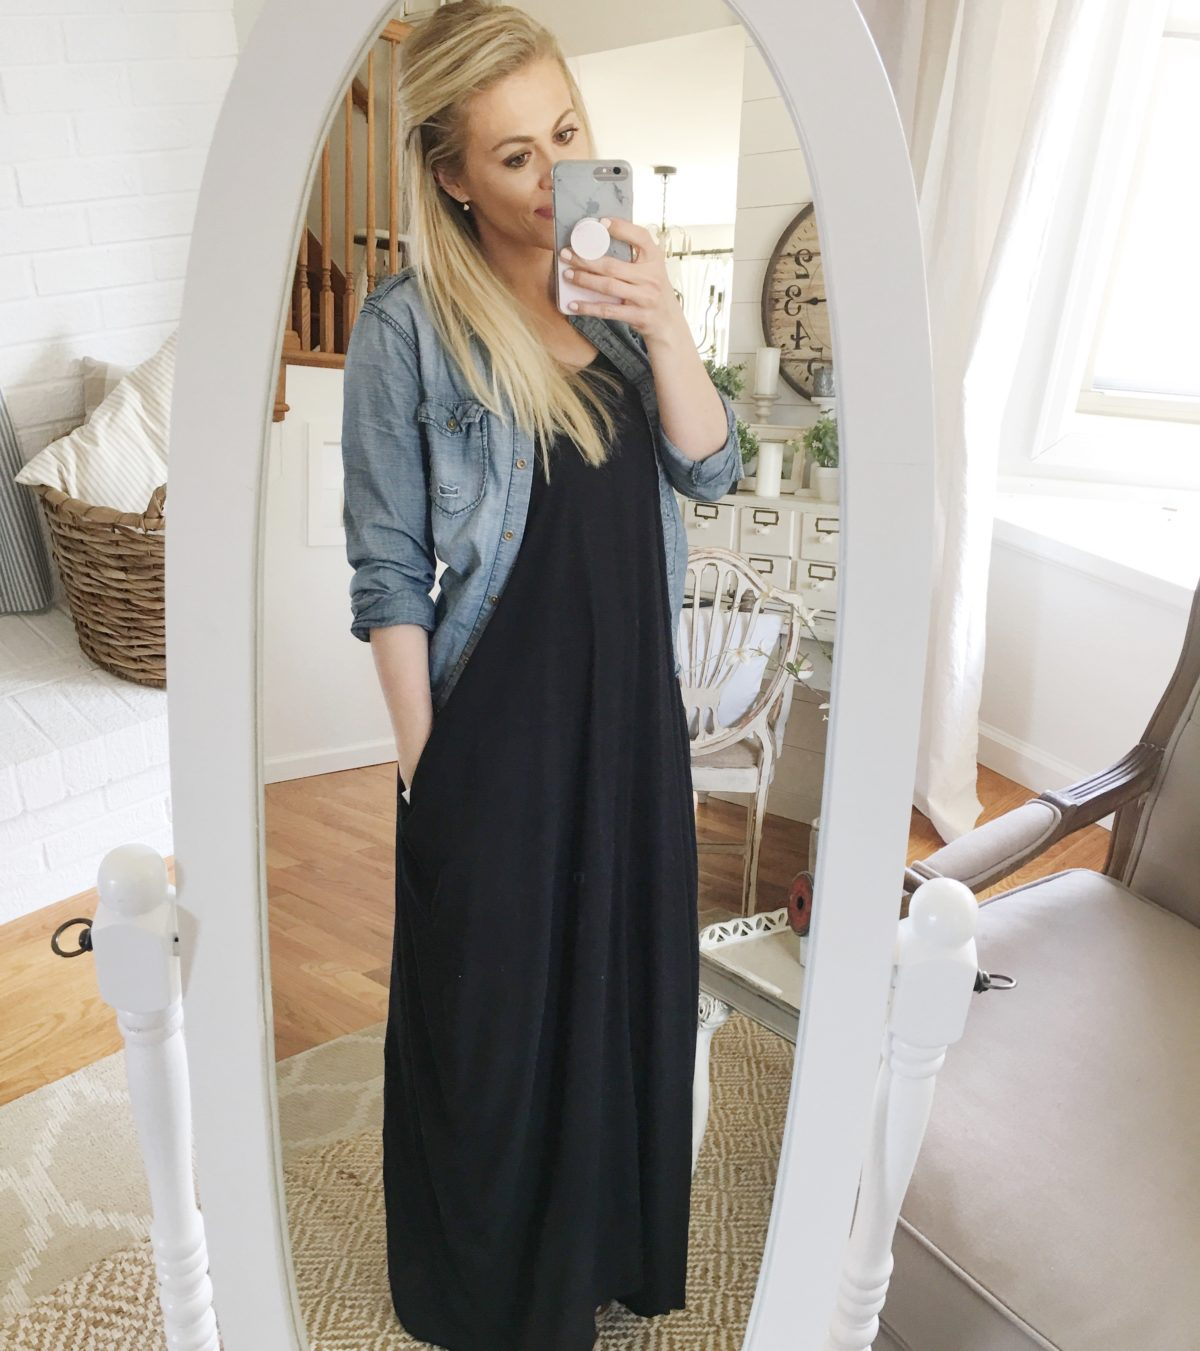 Cute maxi dress and denim utility shirt. Great outfit for spring and summer!